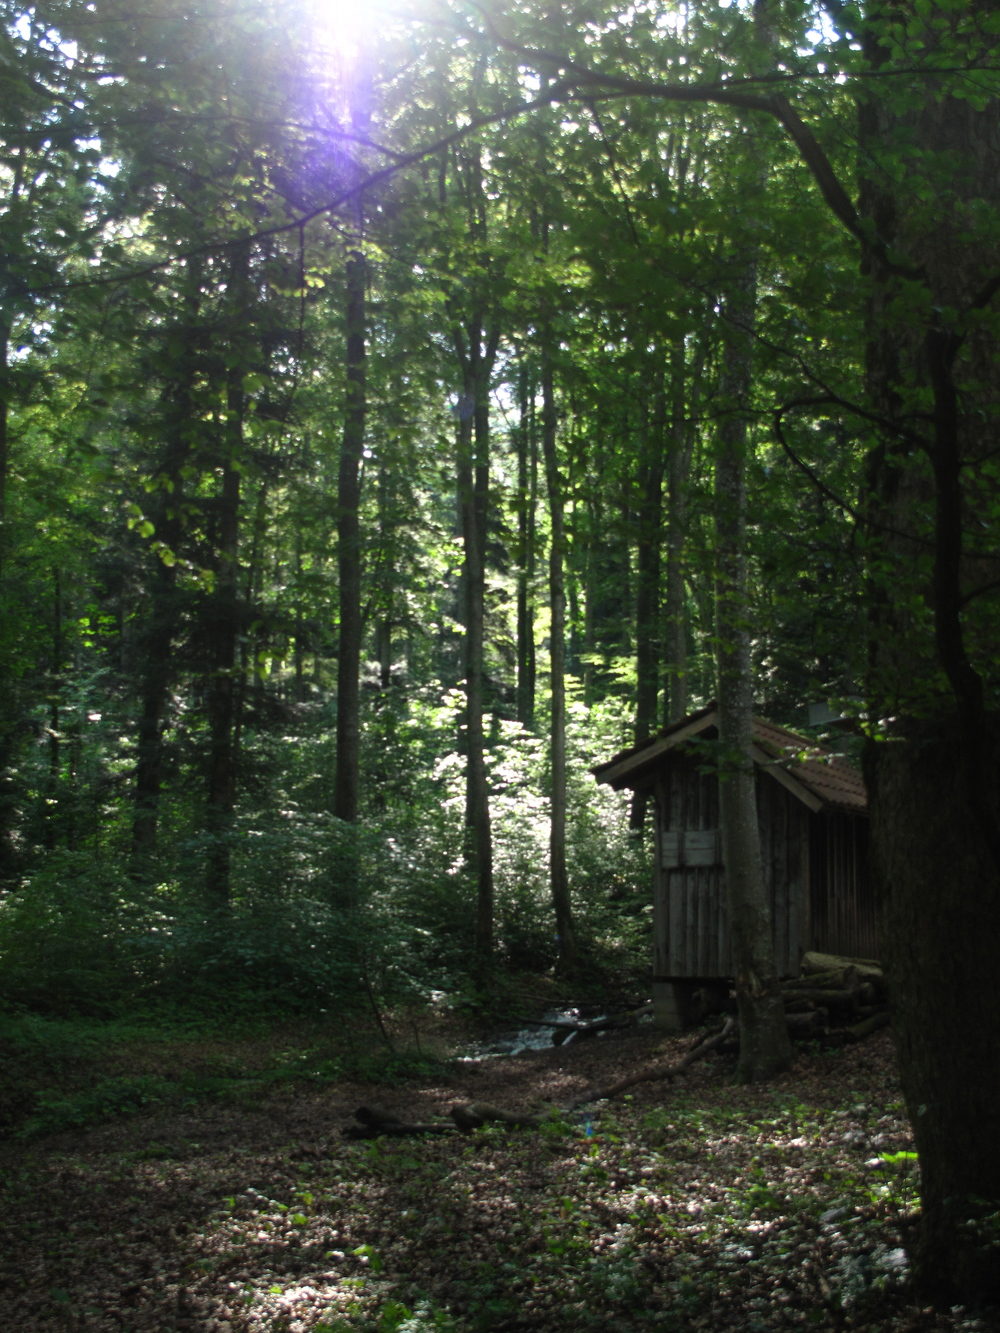 The Black Forest of Germany - a cabin in the woods.